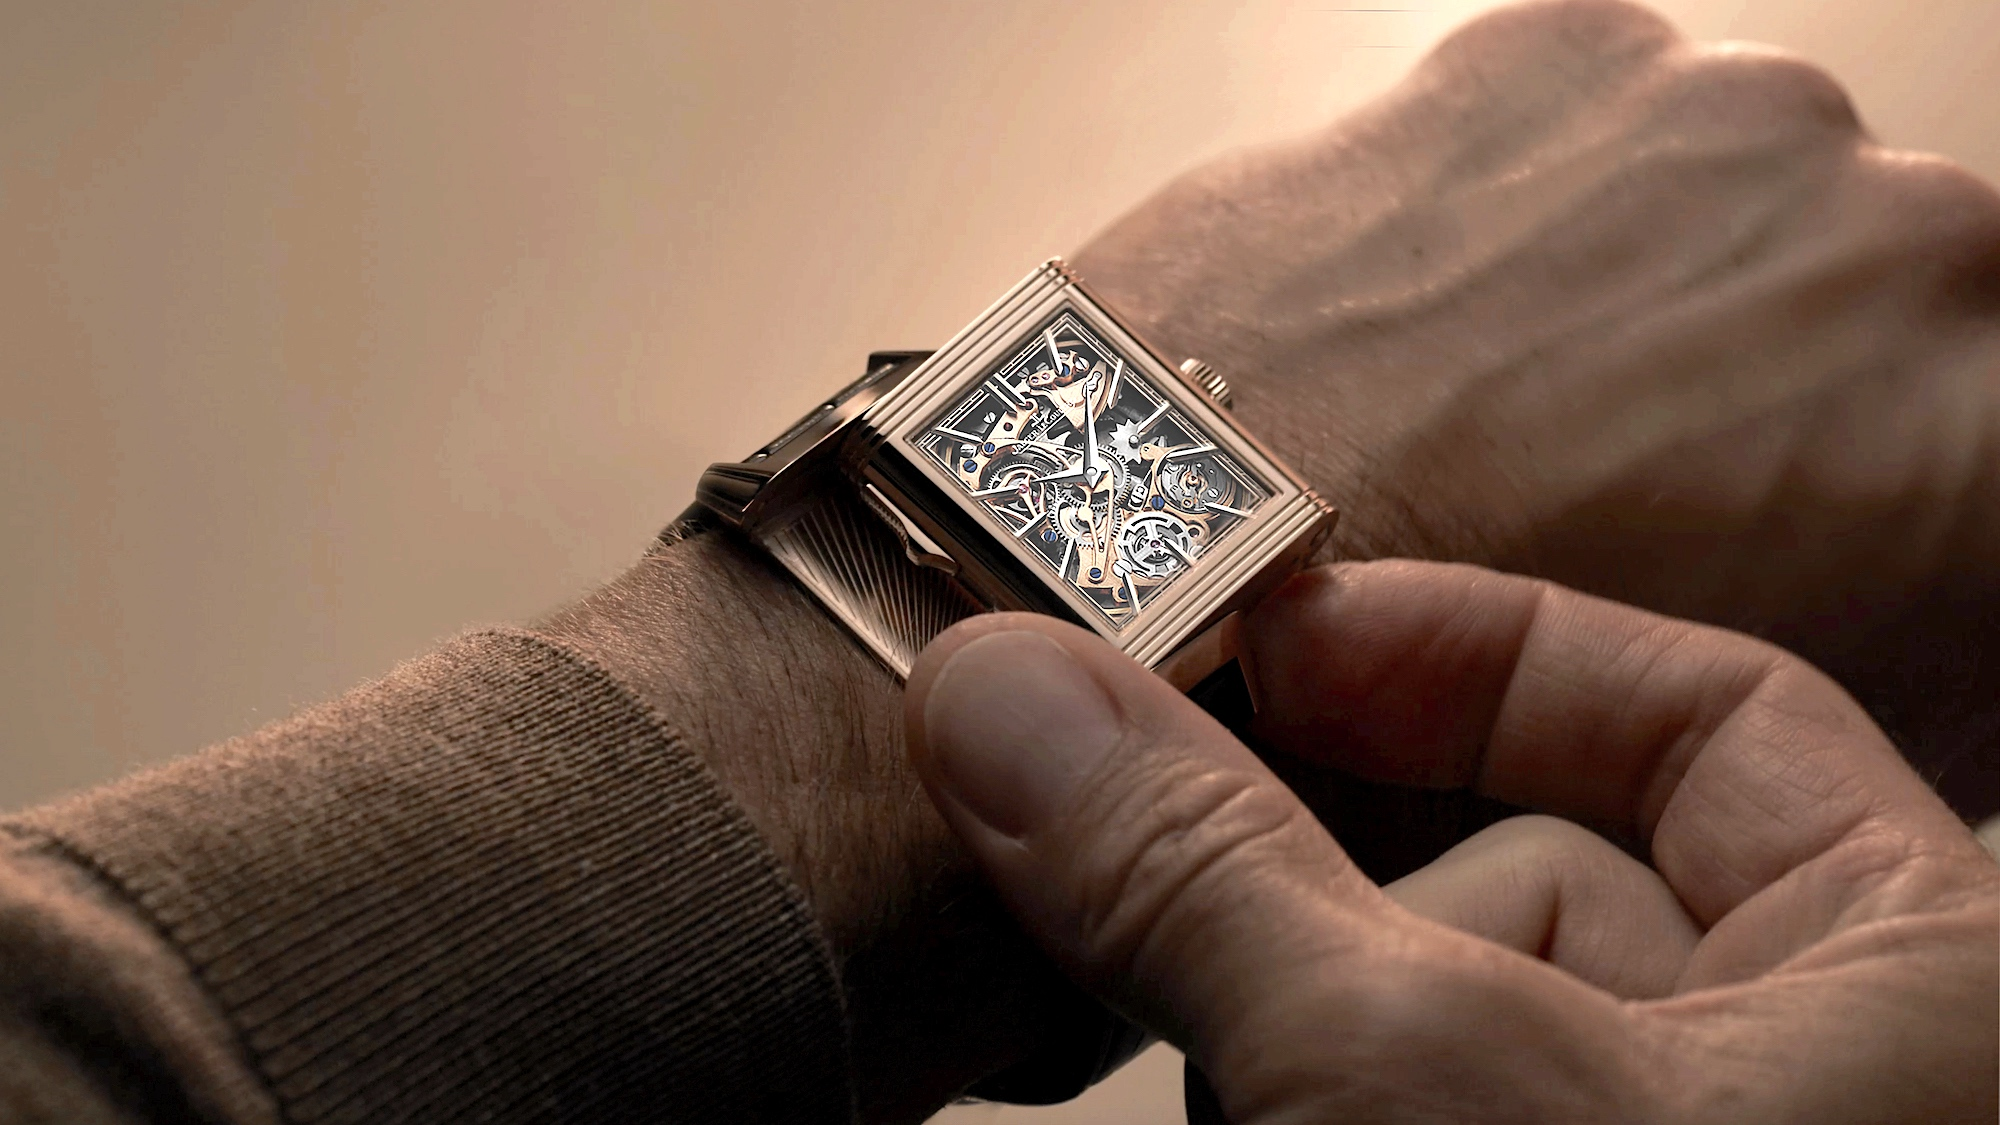 Jaeger-LeCoultre Reverso Tribute Minute Repeater - lifestyle 3